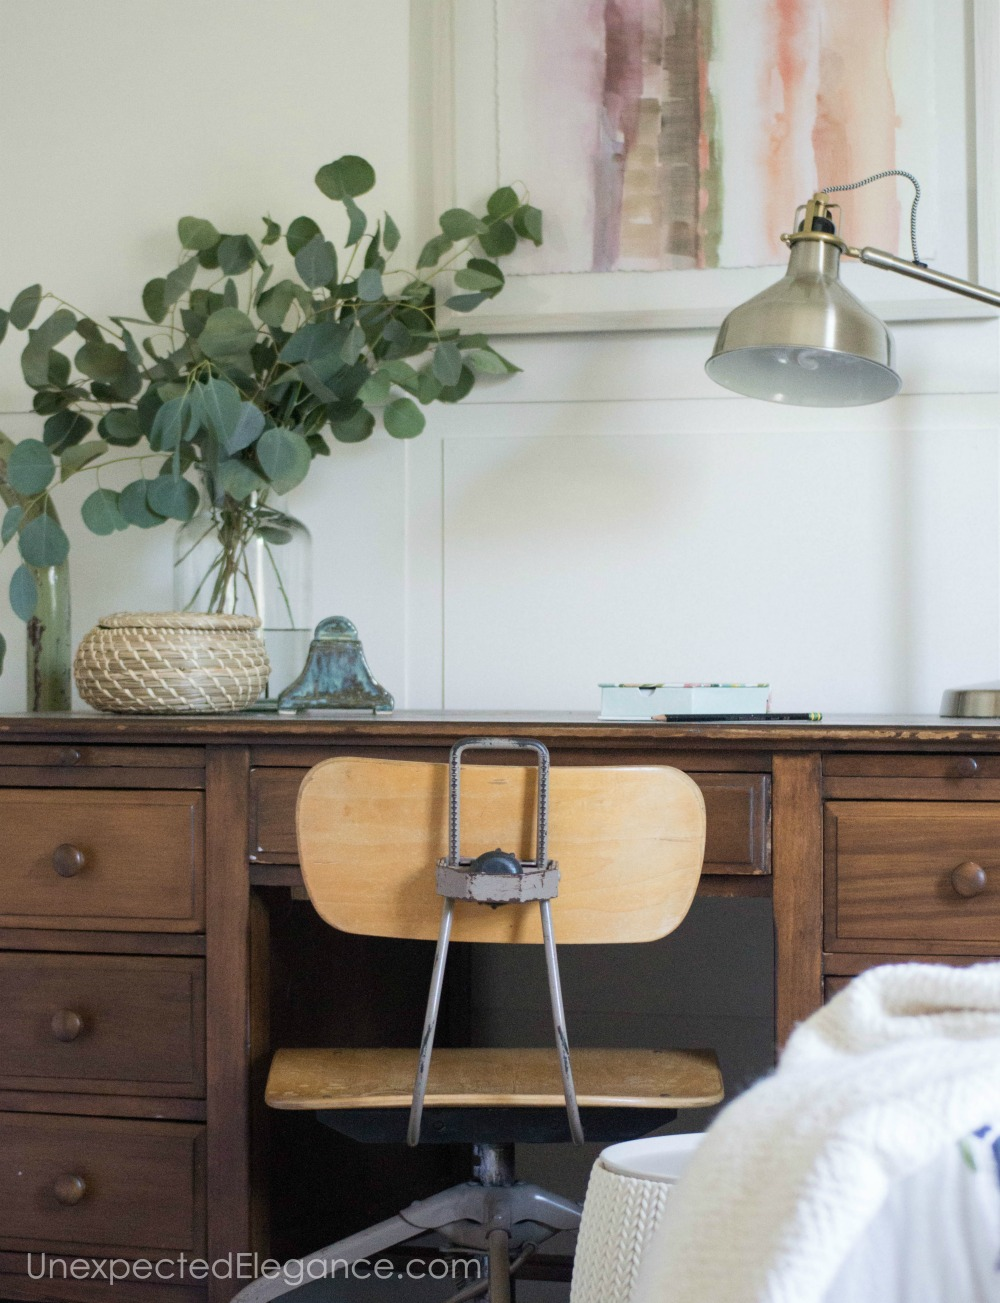 Get 5 ways to makeover ANY space for FREE!